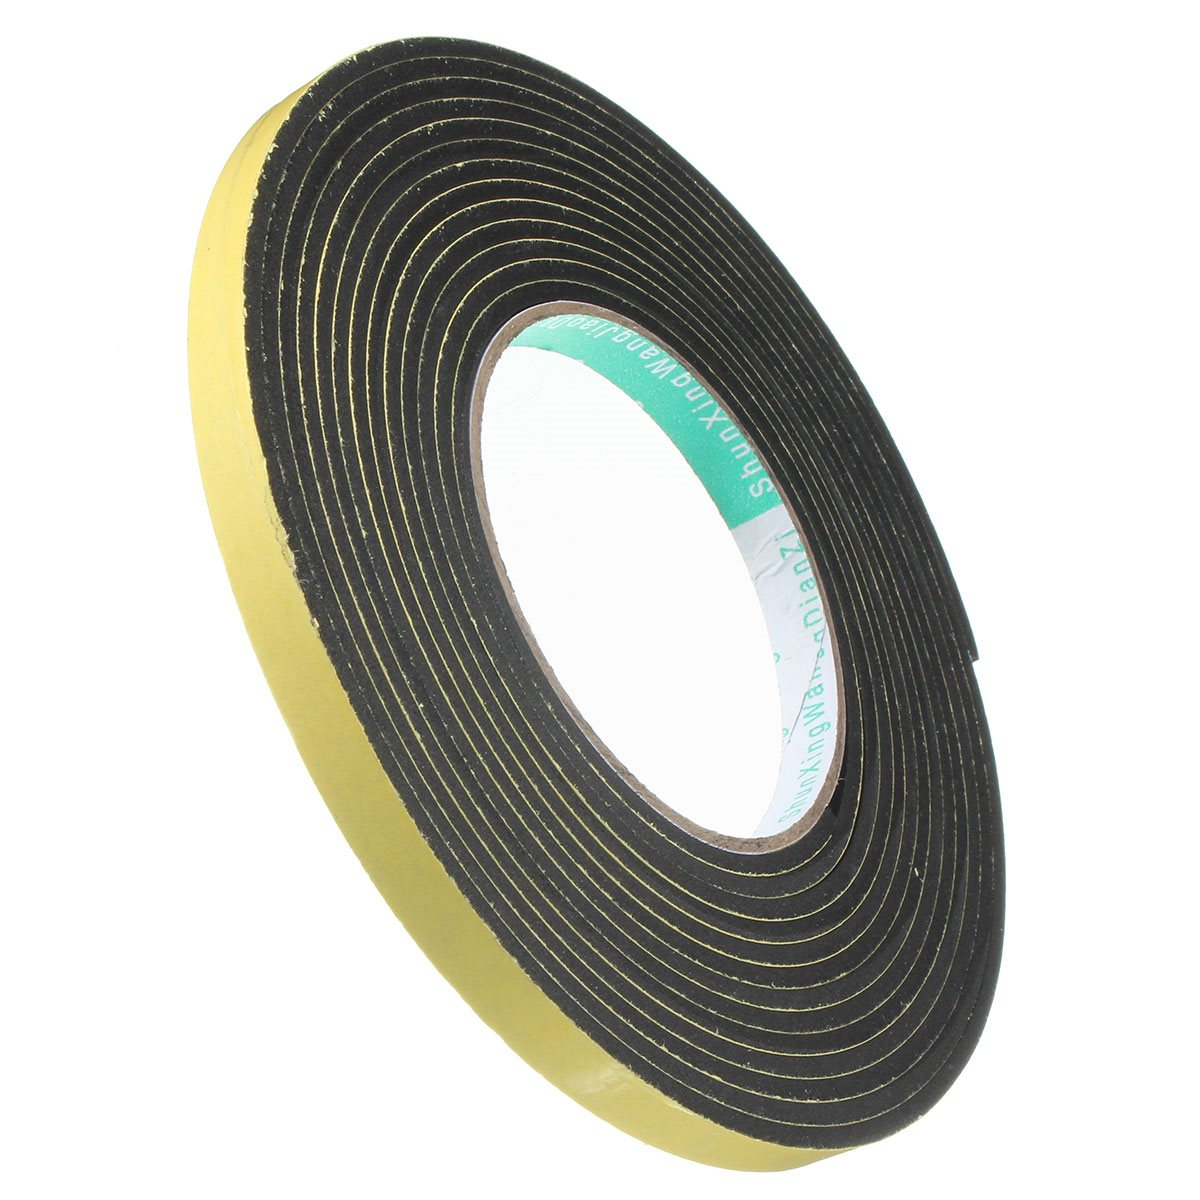 1Pc 3.5M Vinyl Electrical Tape Insulation Adhesive Tape Black Home Use Tools RG